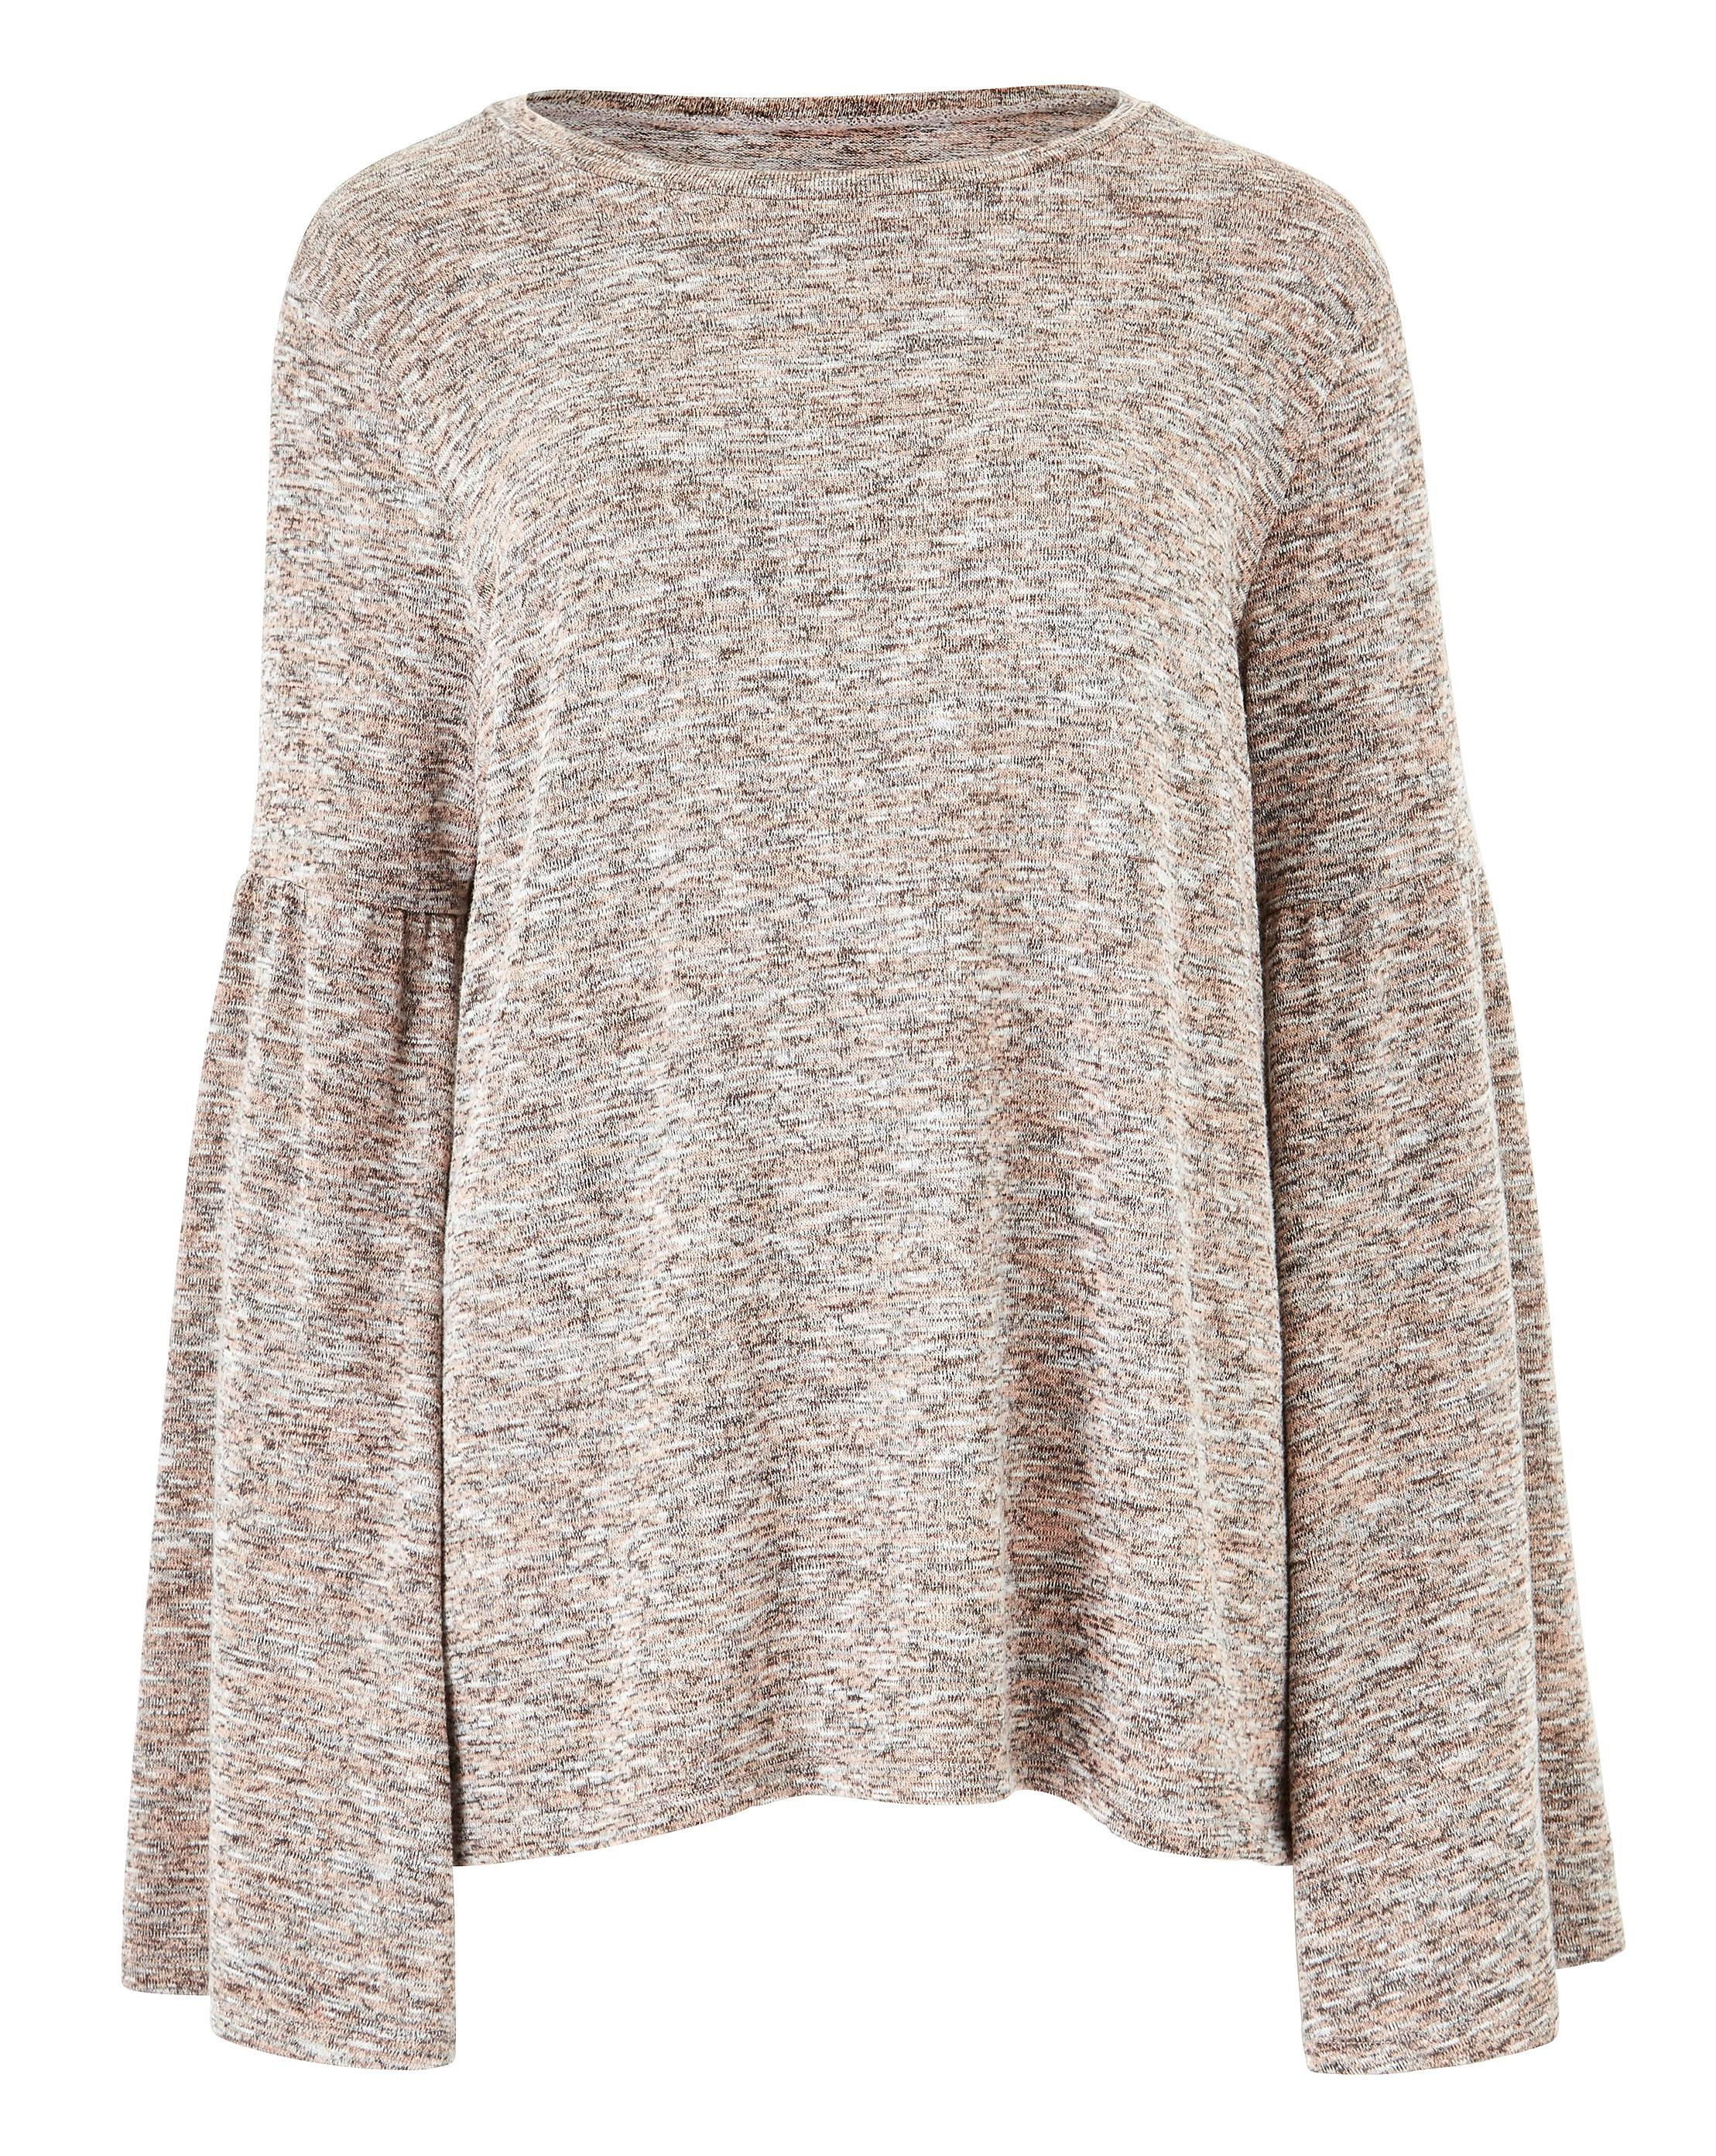 67f70eea490f Lyst - Simply Be Space Dye Flared Sleeve Jersey Top in Brown